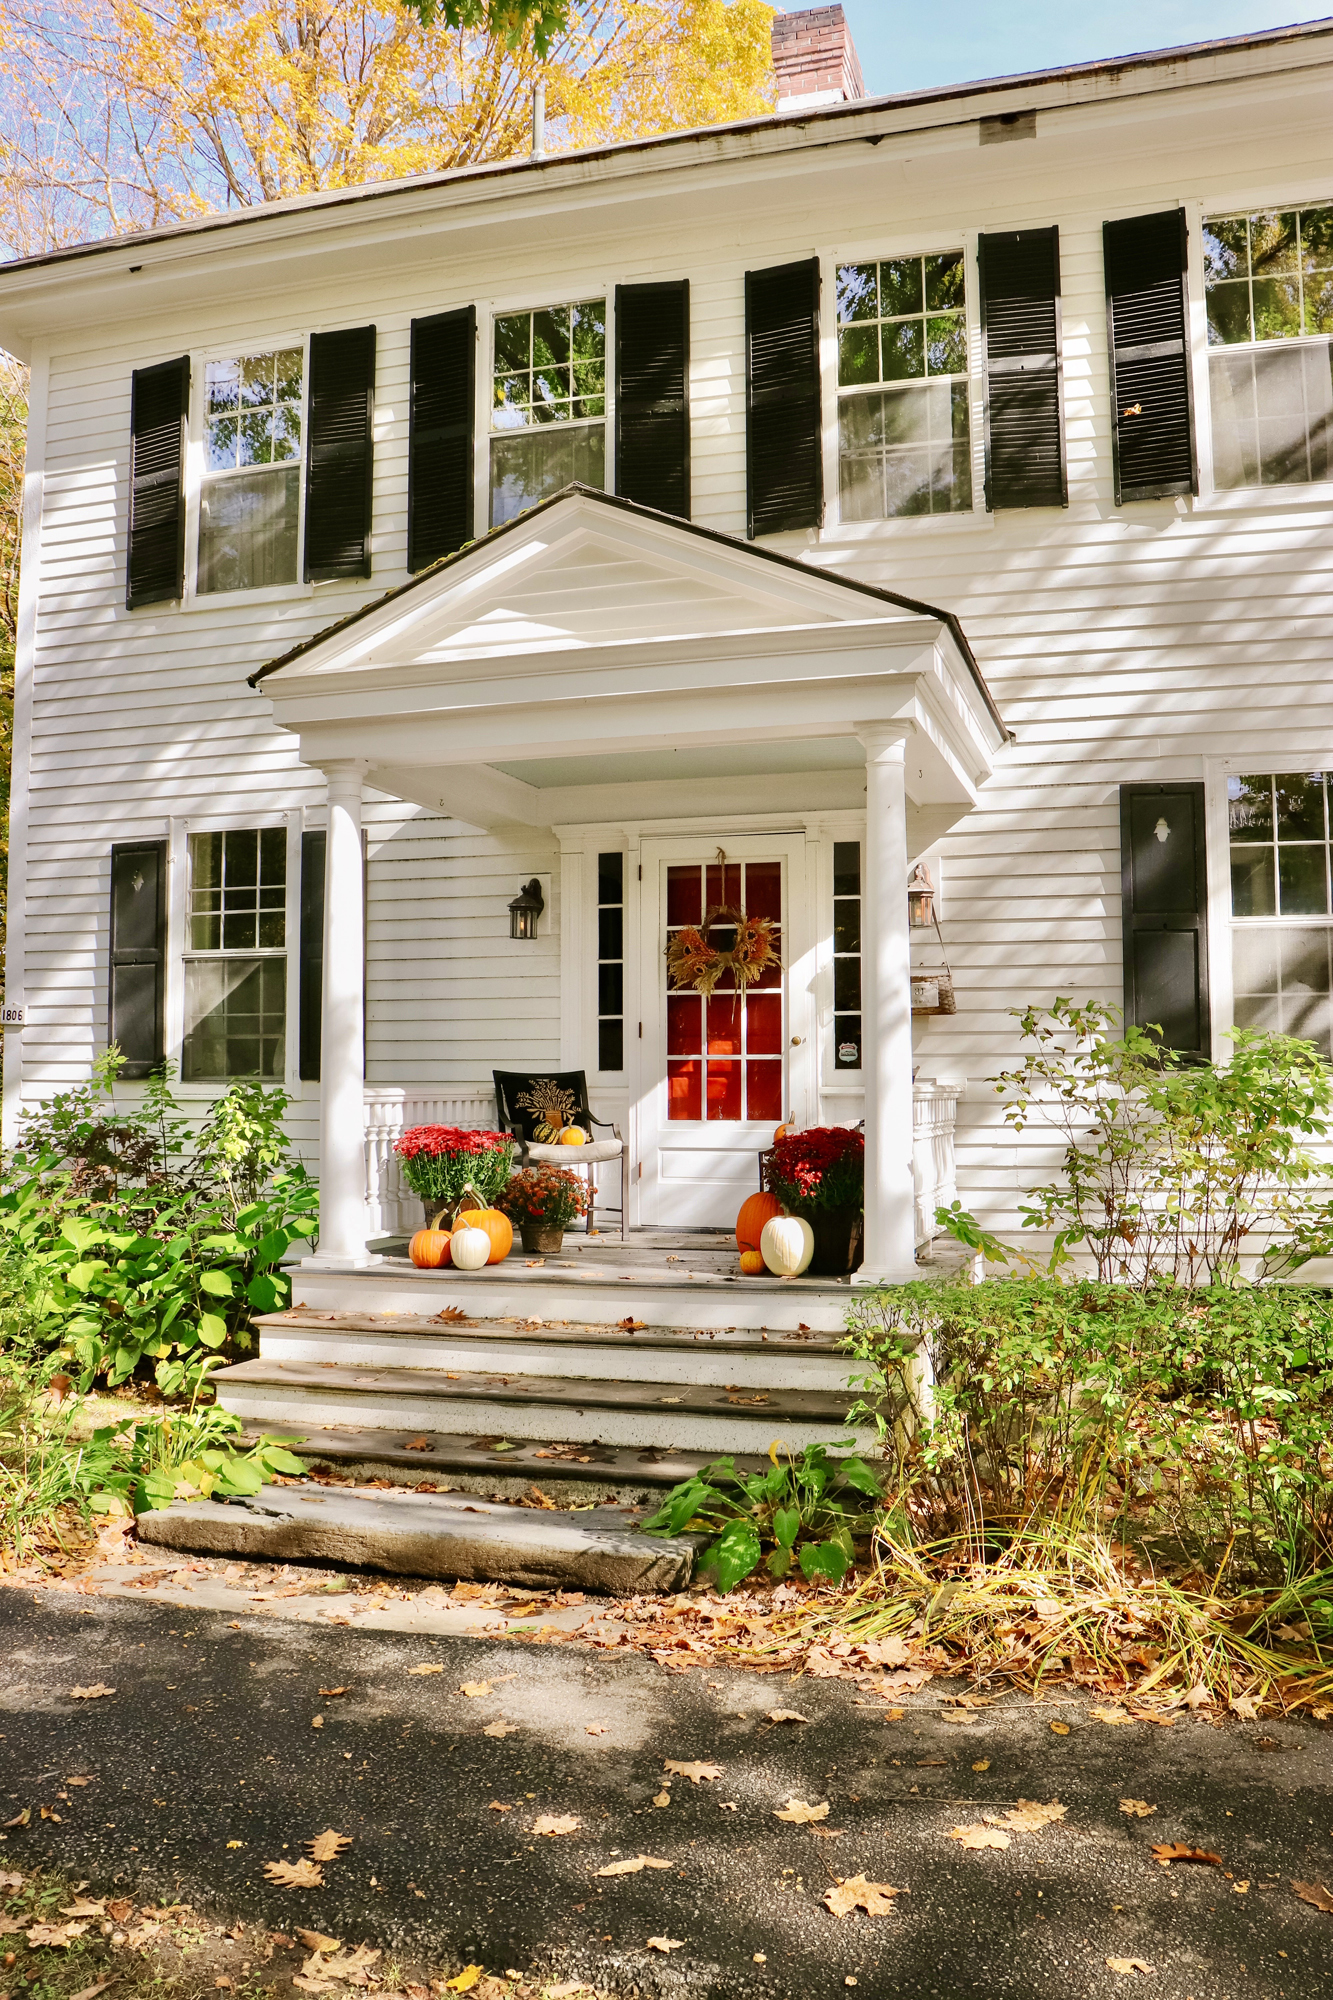 Vermont Fall Travel Guide | Fall Foliage guide, best inns & hotels, top restaurants to eat at, and all the cute towns/places to stop along the way!